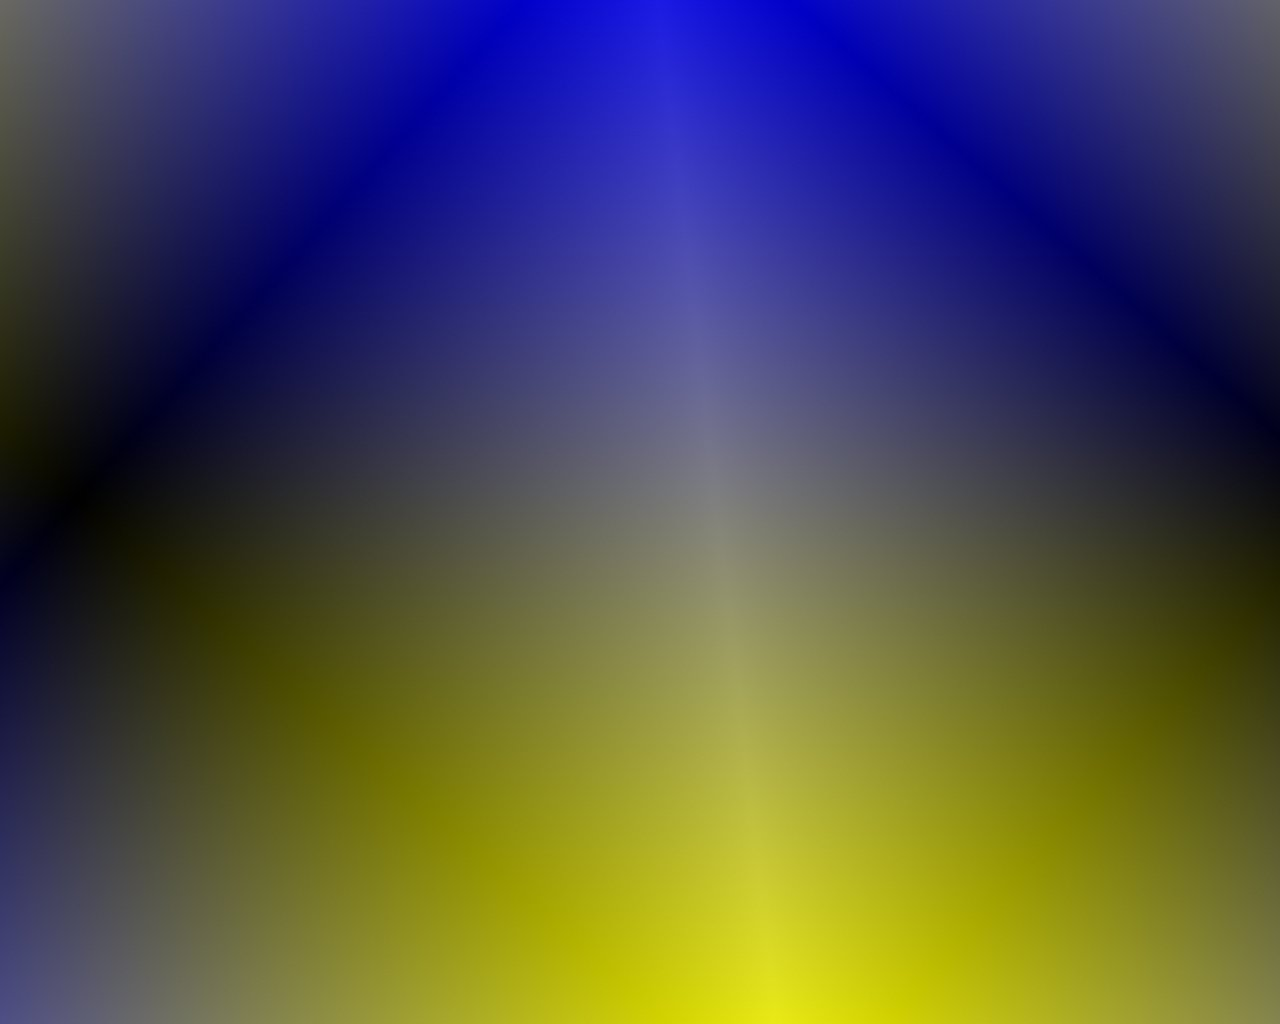 yellow and blue wallpapers - photo #32